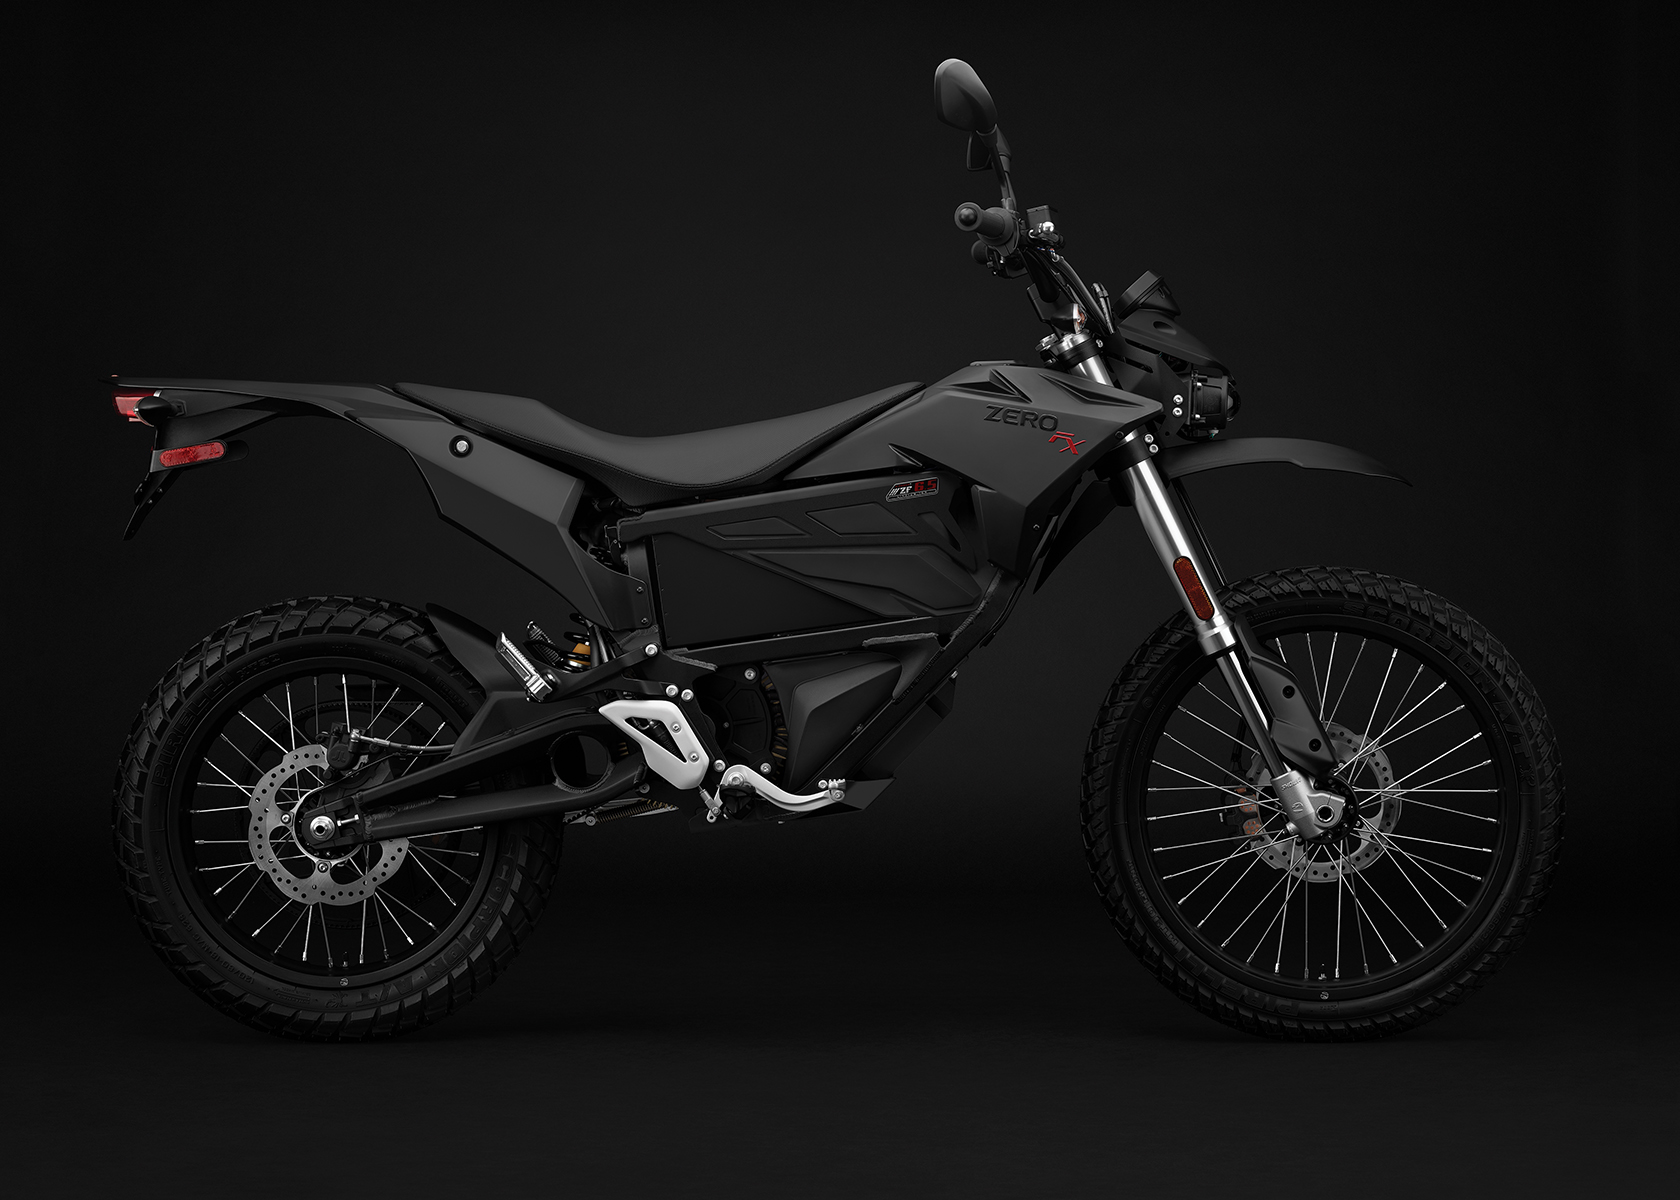 2017 Zero FX Electric Motorcycle: Black Profile Right